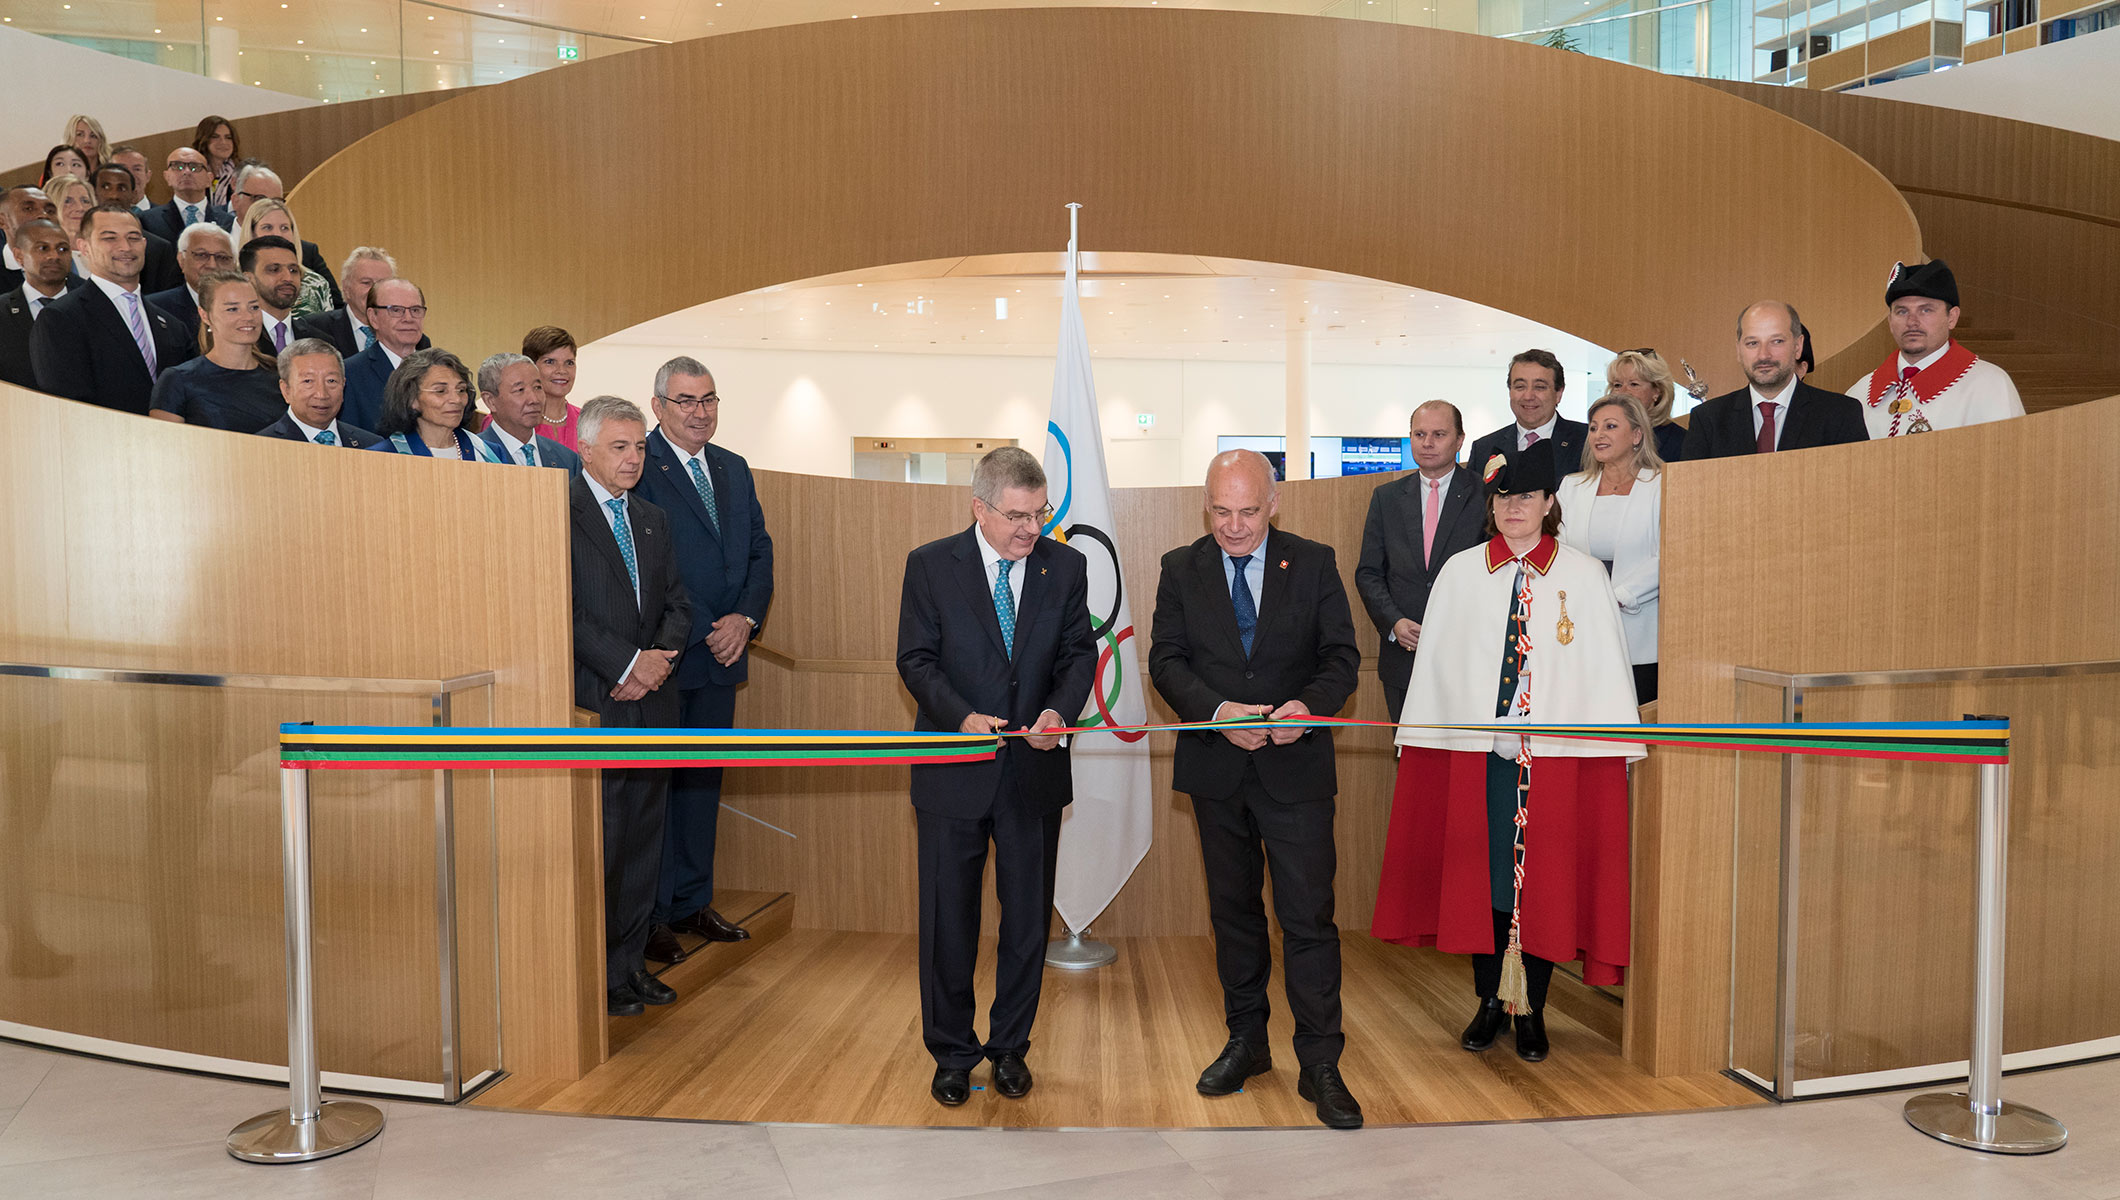 Official Opening of the Olympic House